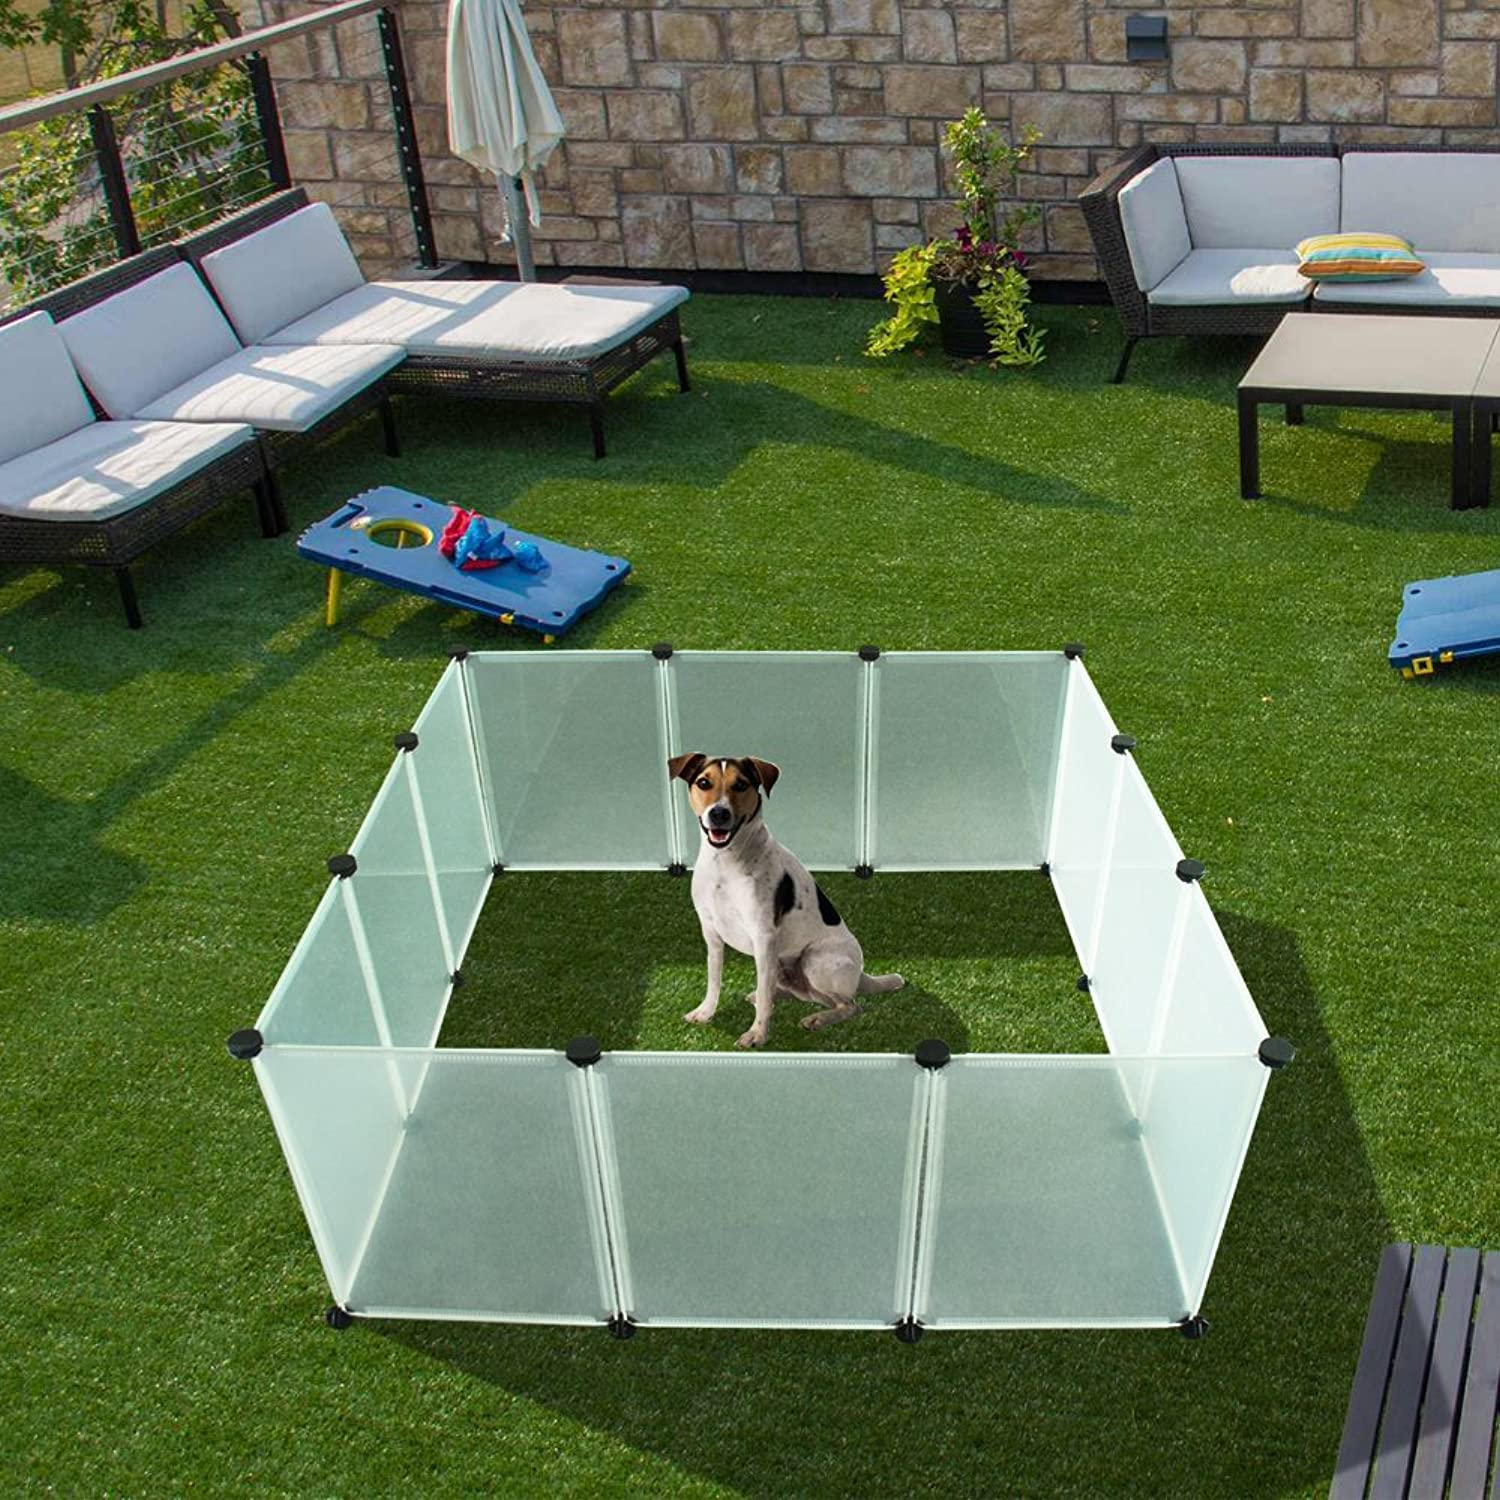 EXPAWLORER Pet Playpen Puppy  Plastic Indoor Yard Fence Durable Large Space Small Animals 12 pcs Transparent Panels